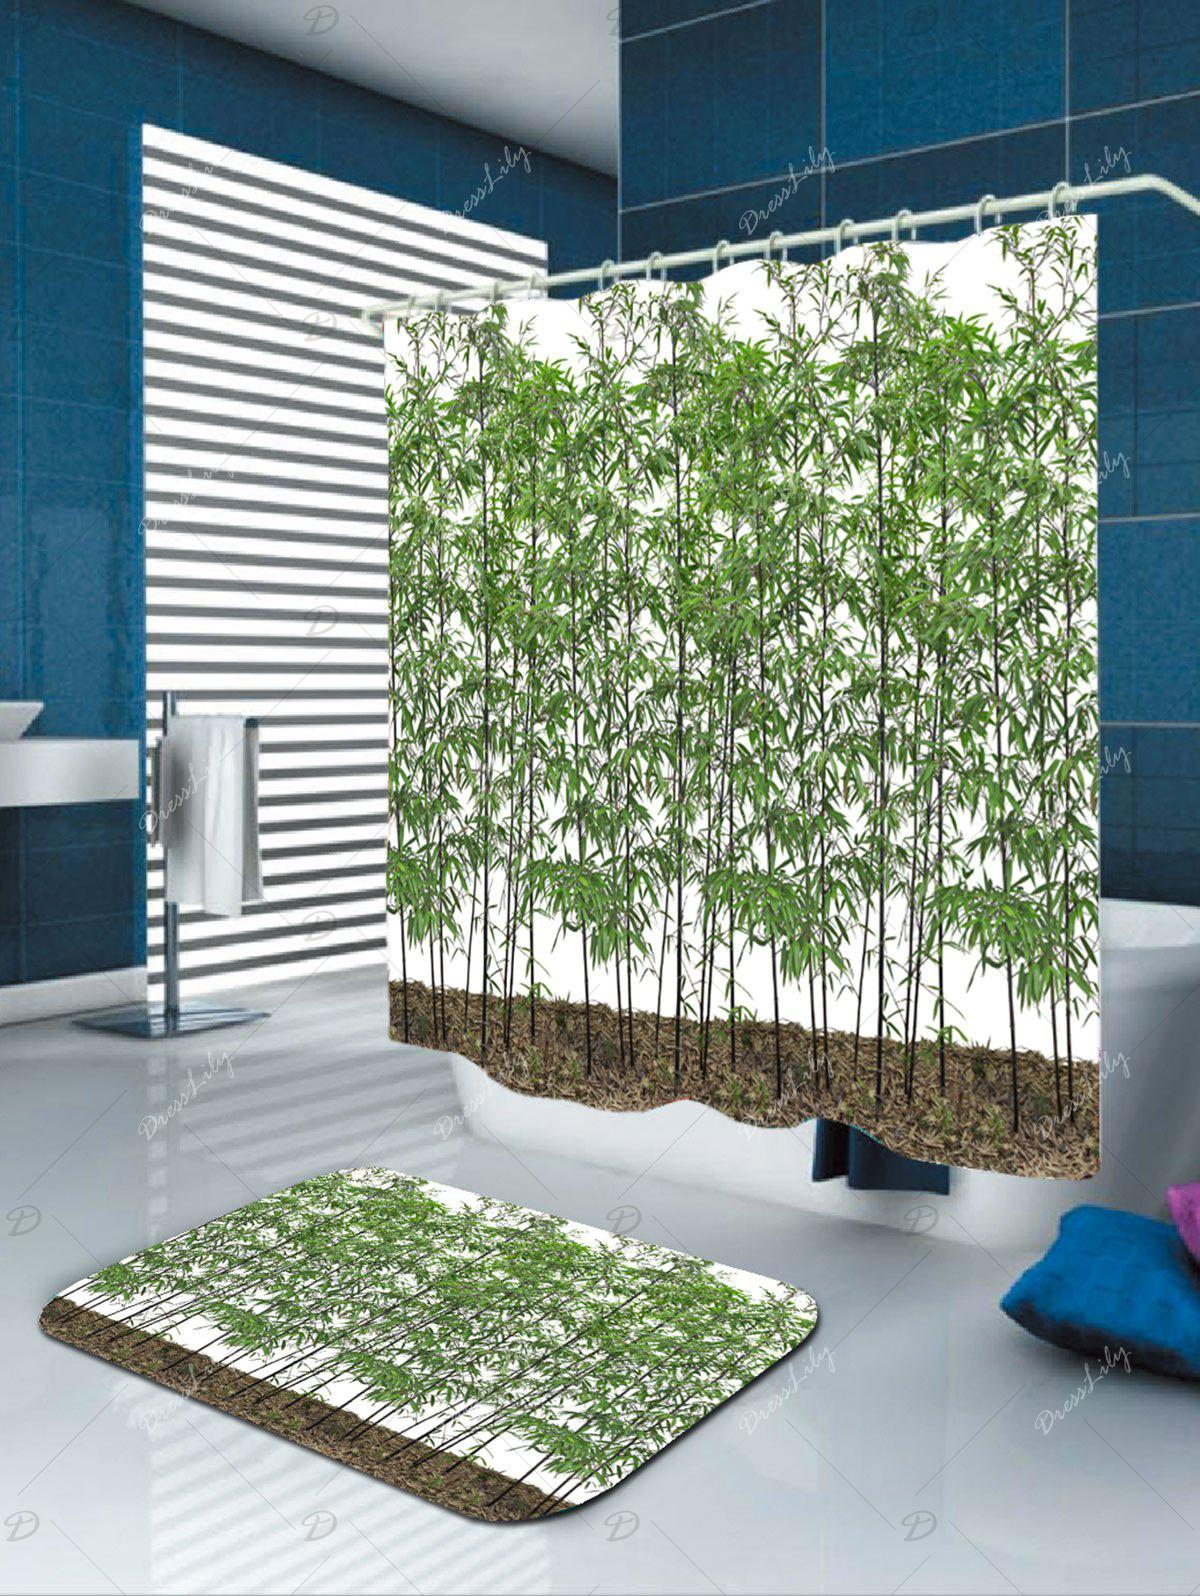 Waterproof Fabric Bamboo Trees Shower Curtain - GREEN W71 INCH * L79 INCH